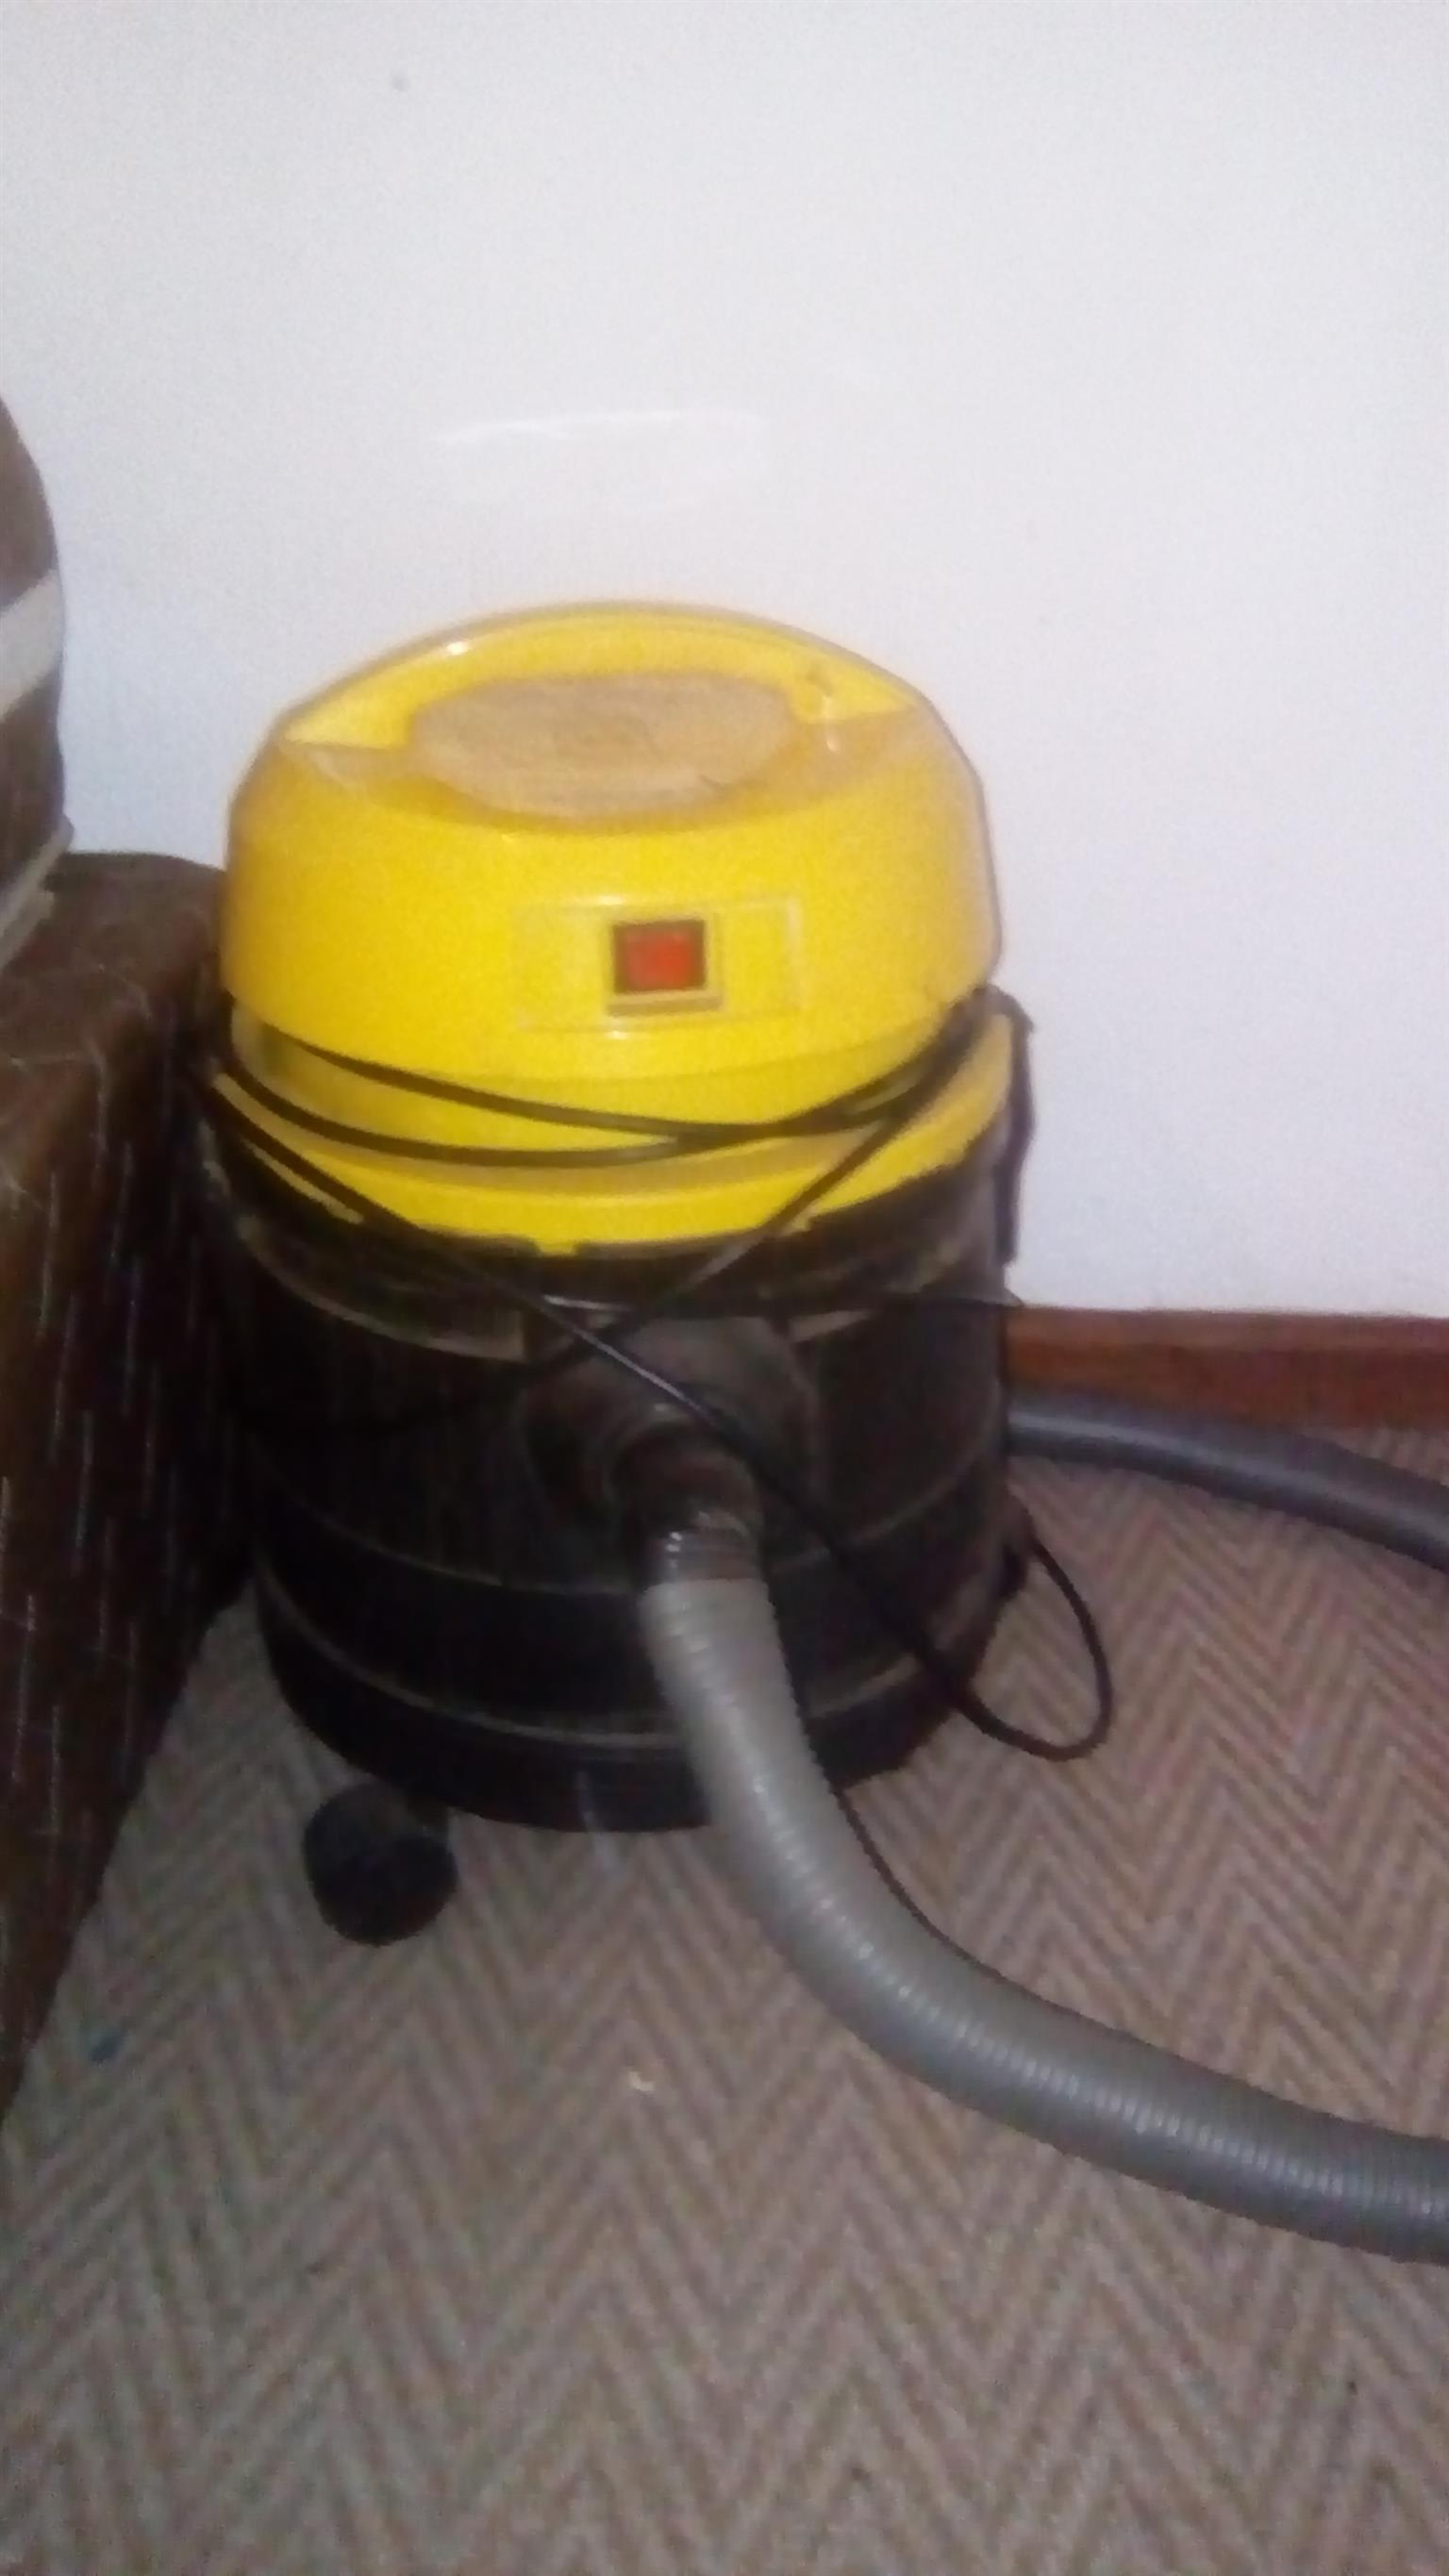 Conti Twister Vacuum cleaner